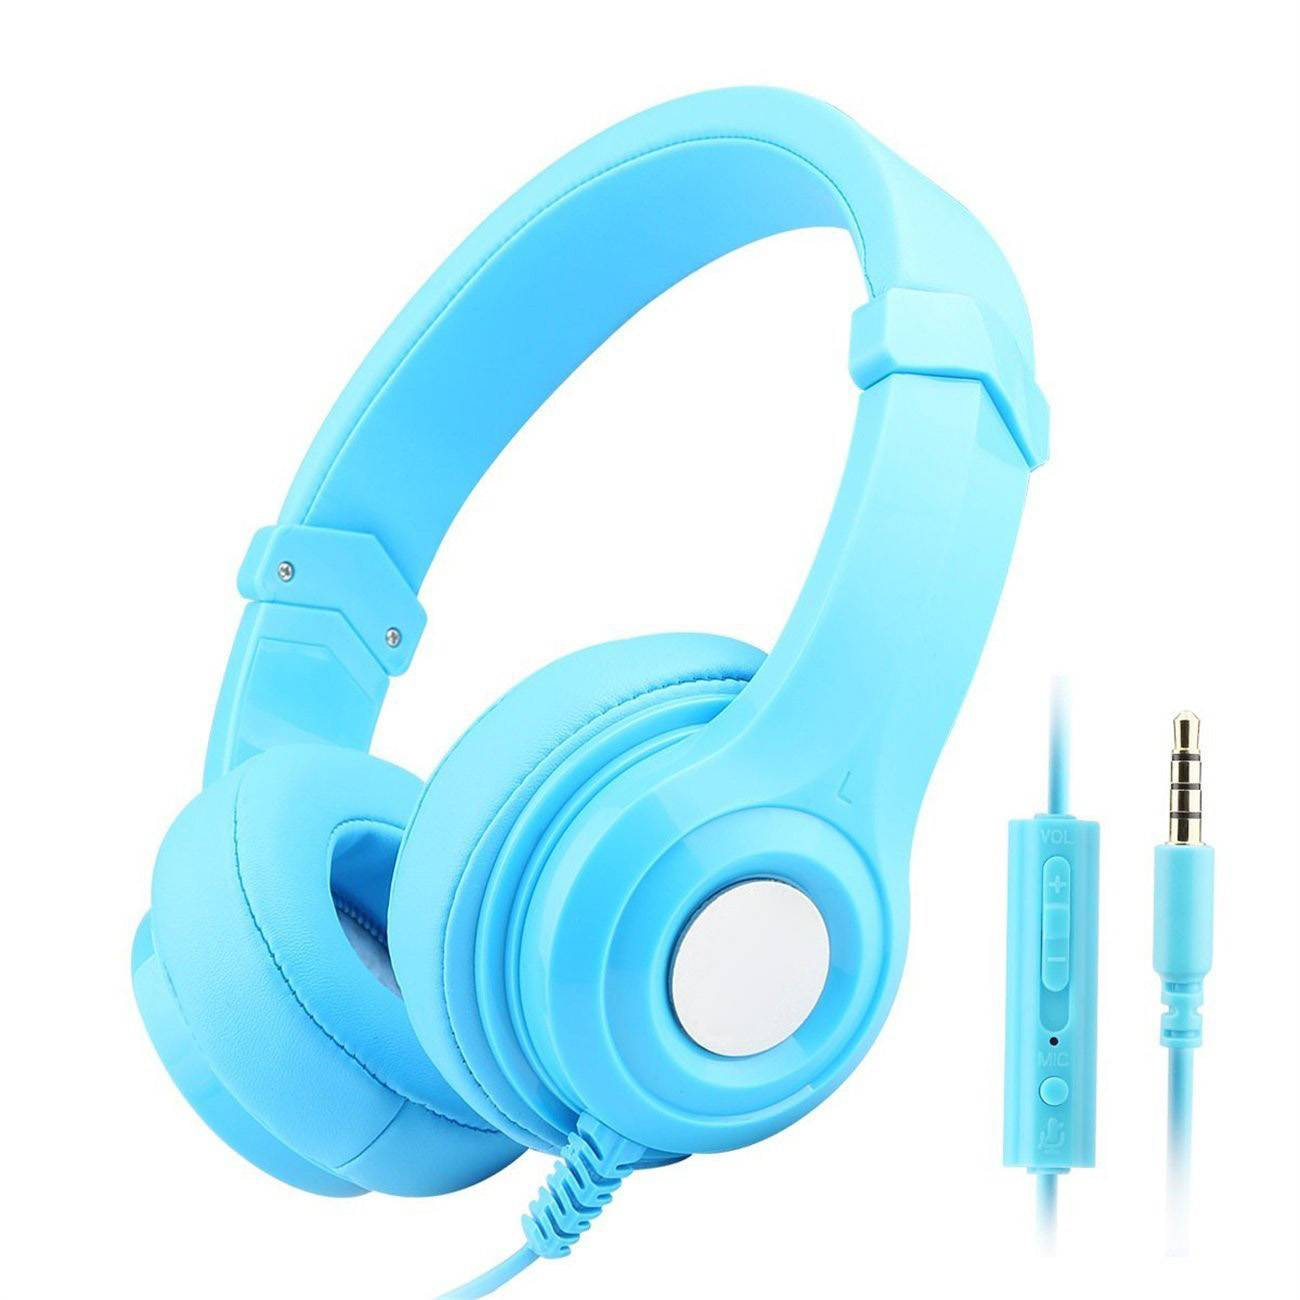 Special big ear-cushion headphone for mobile with microphone on cable LS-A6